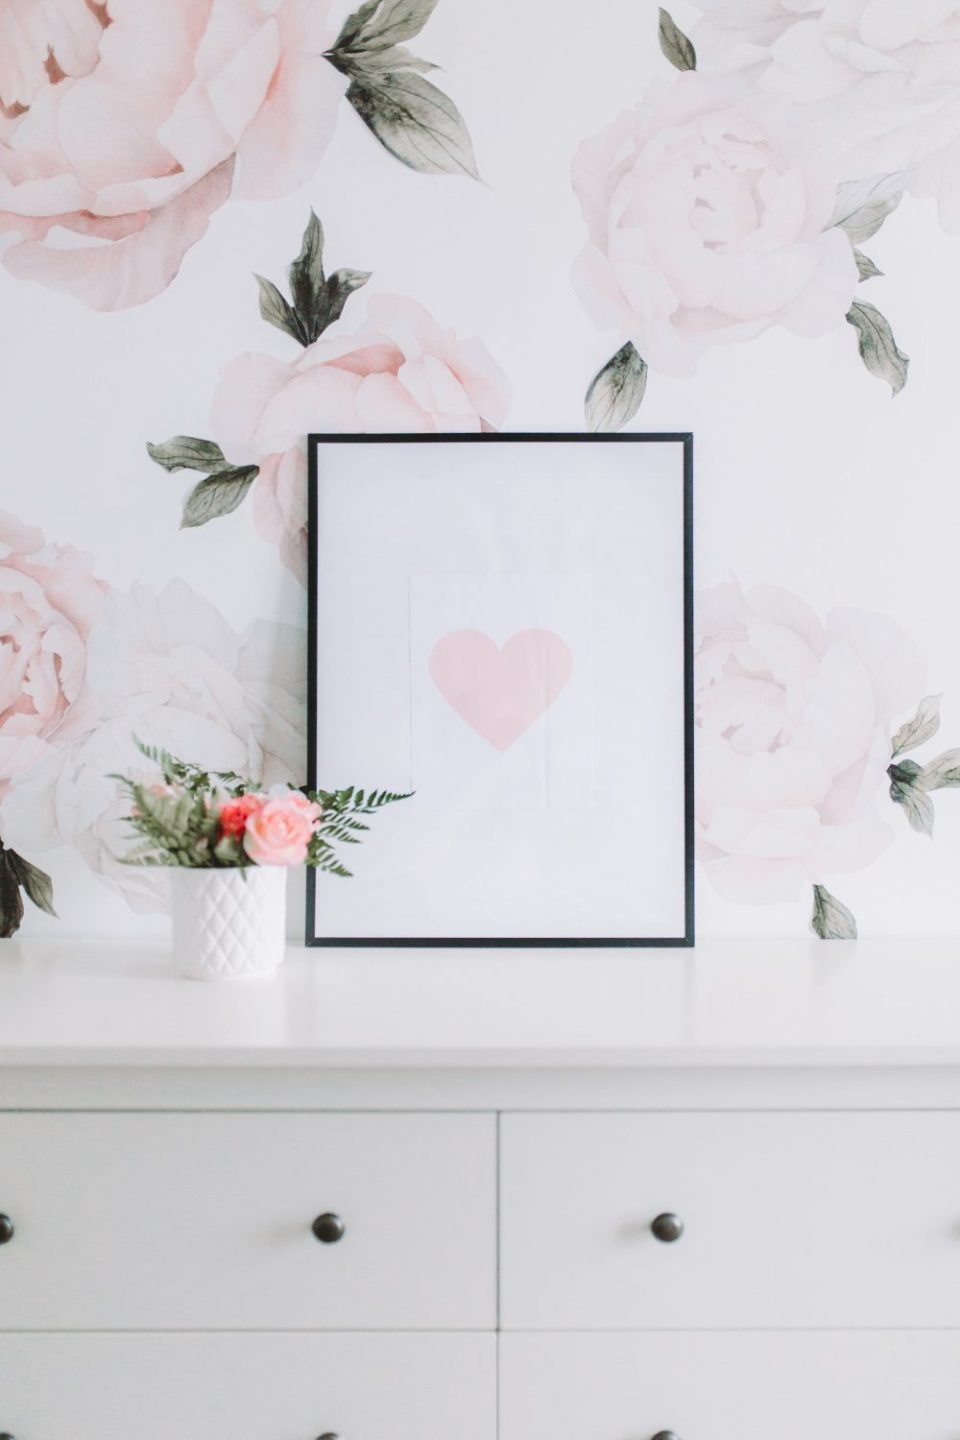 Blush Pink Heart Free Printable Download